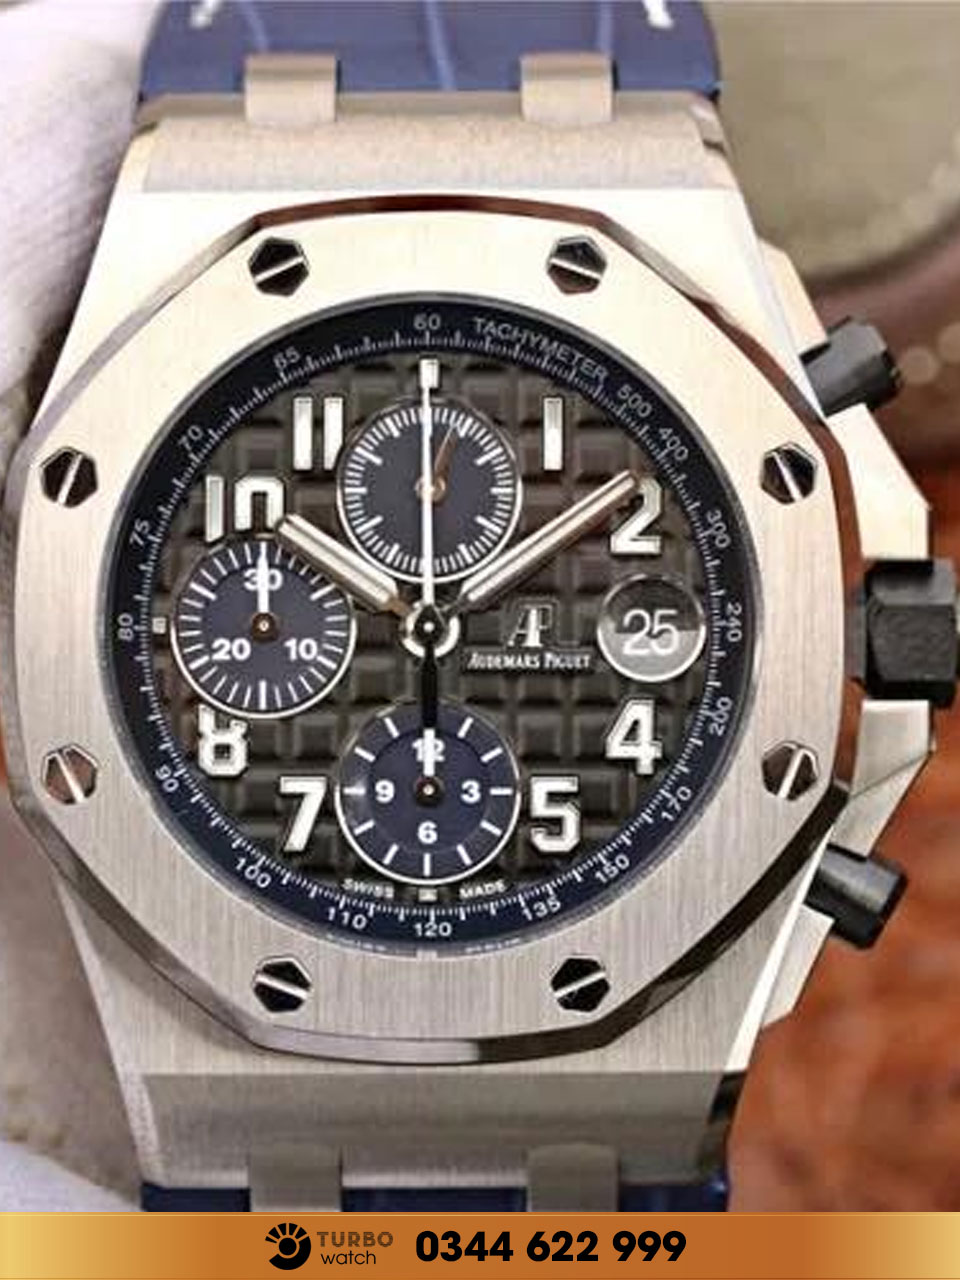 Audemas piguet  royal  Oak Offshore Chronograp  fake 1-1 cao cấp